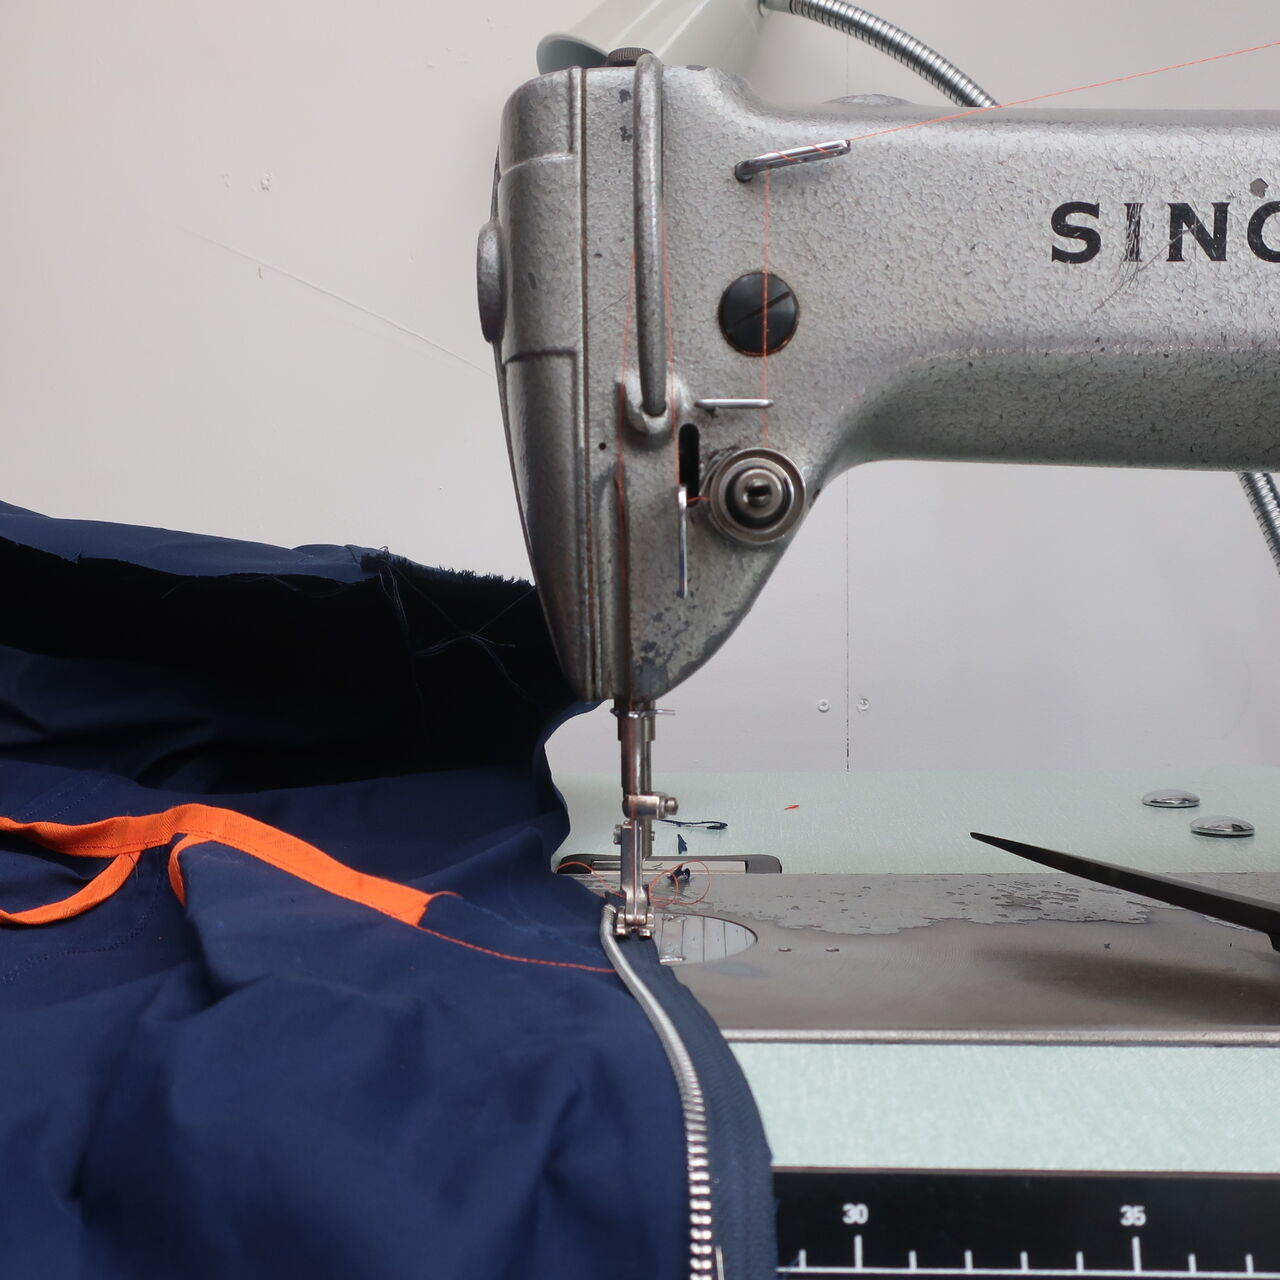 Close-up of a Singer sewing machine working on a navy raincoat.